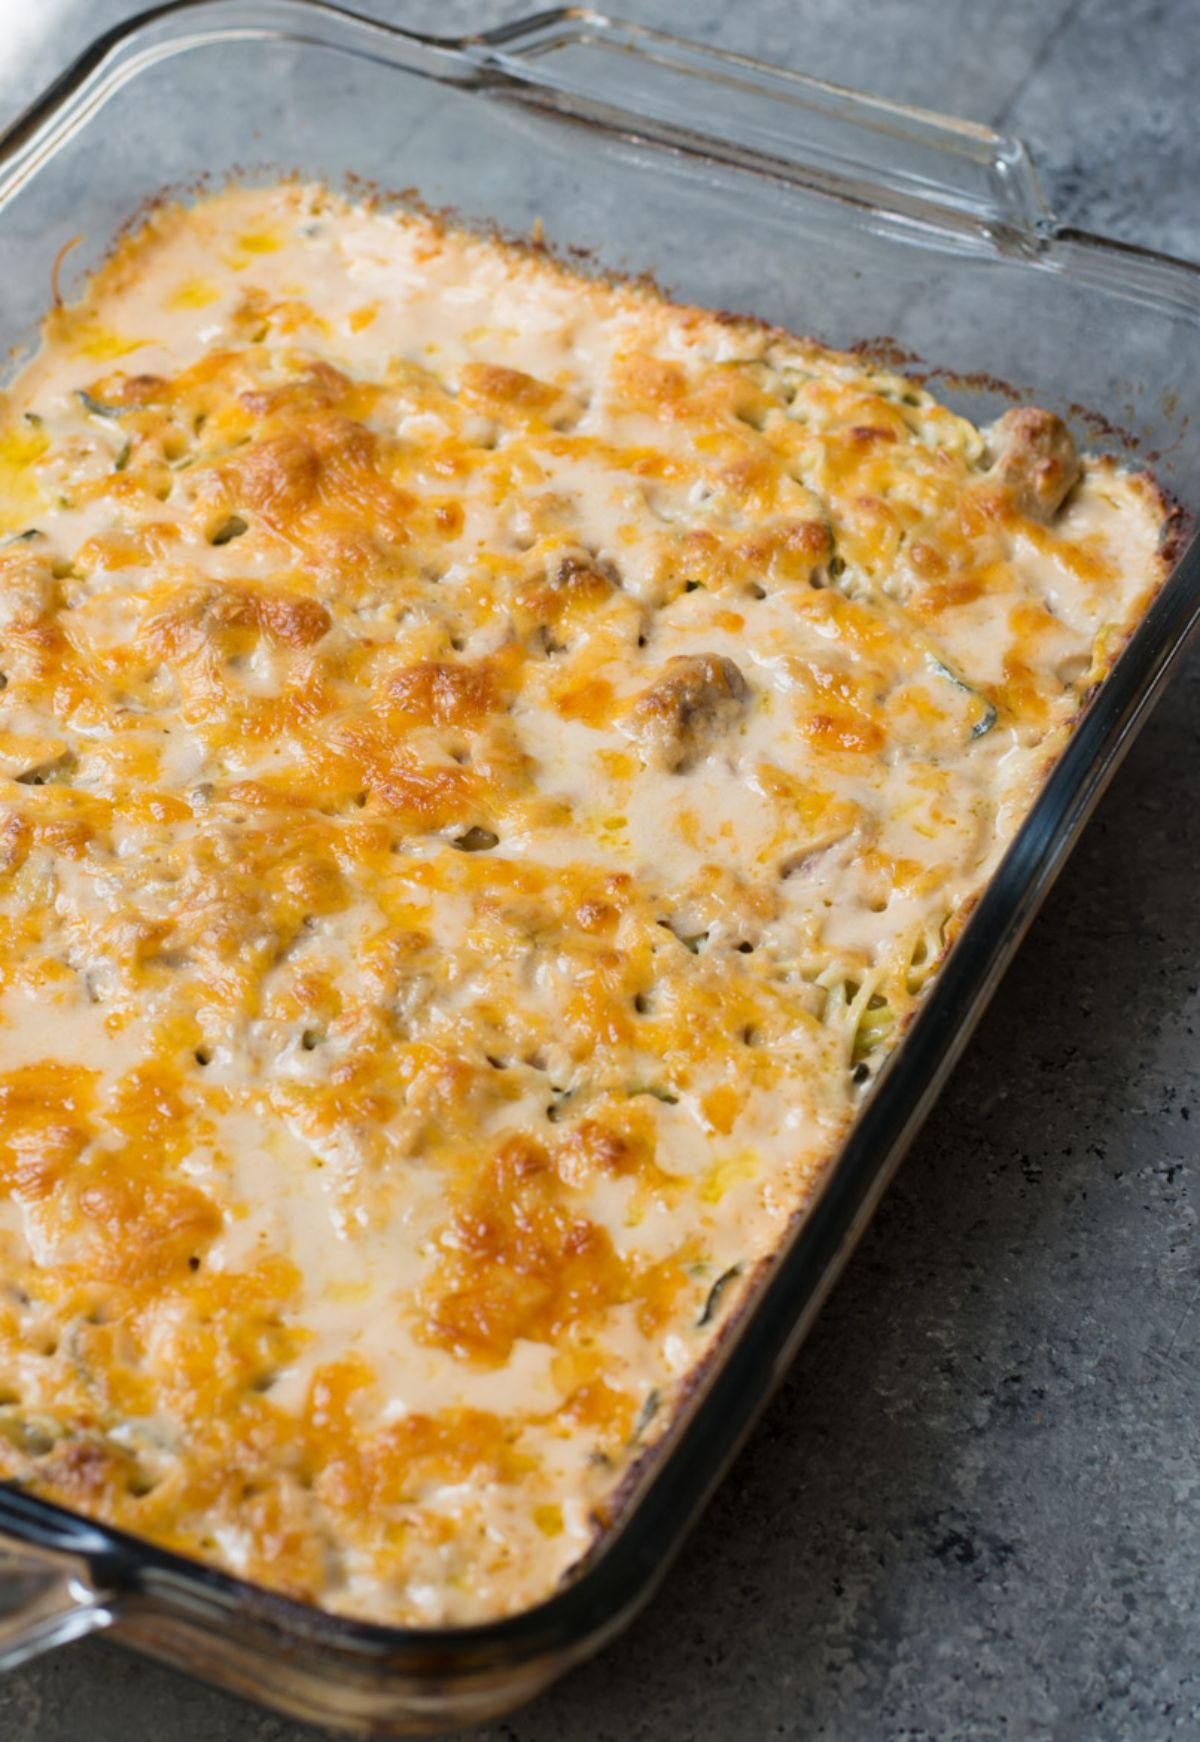 On a gray surface is a rectangular casserole dish filled with cheese-topped casserole